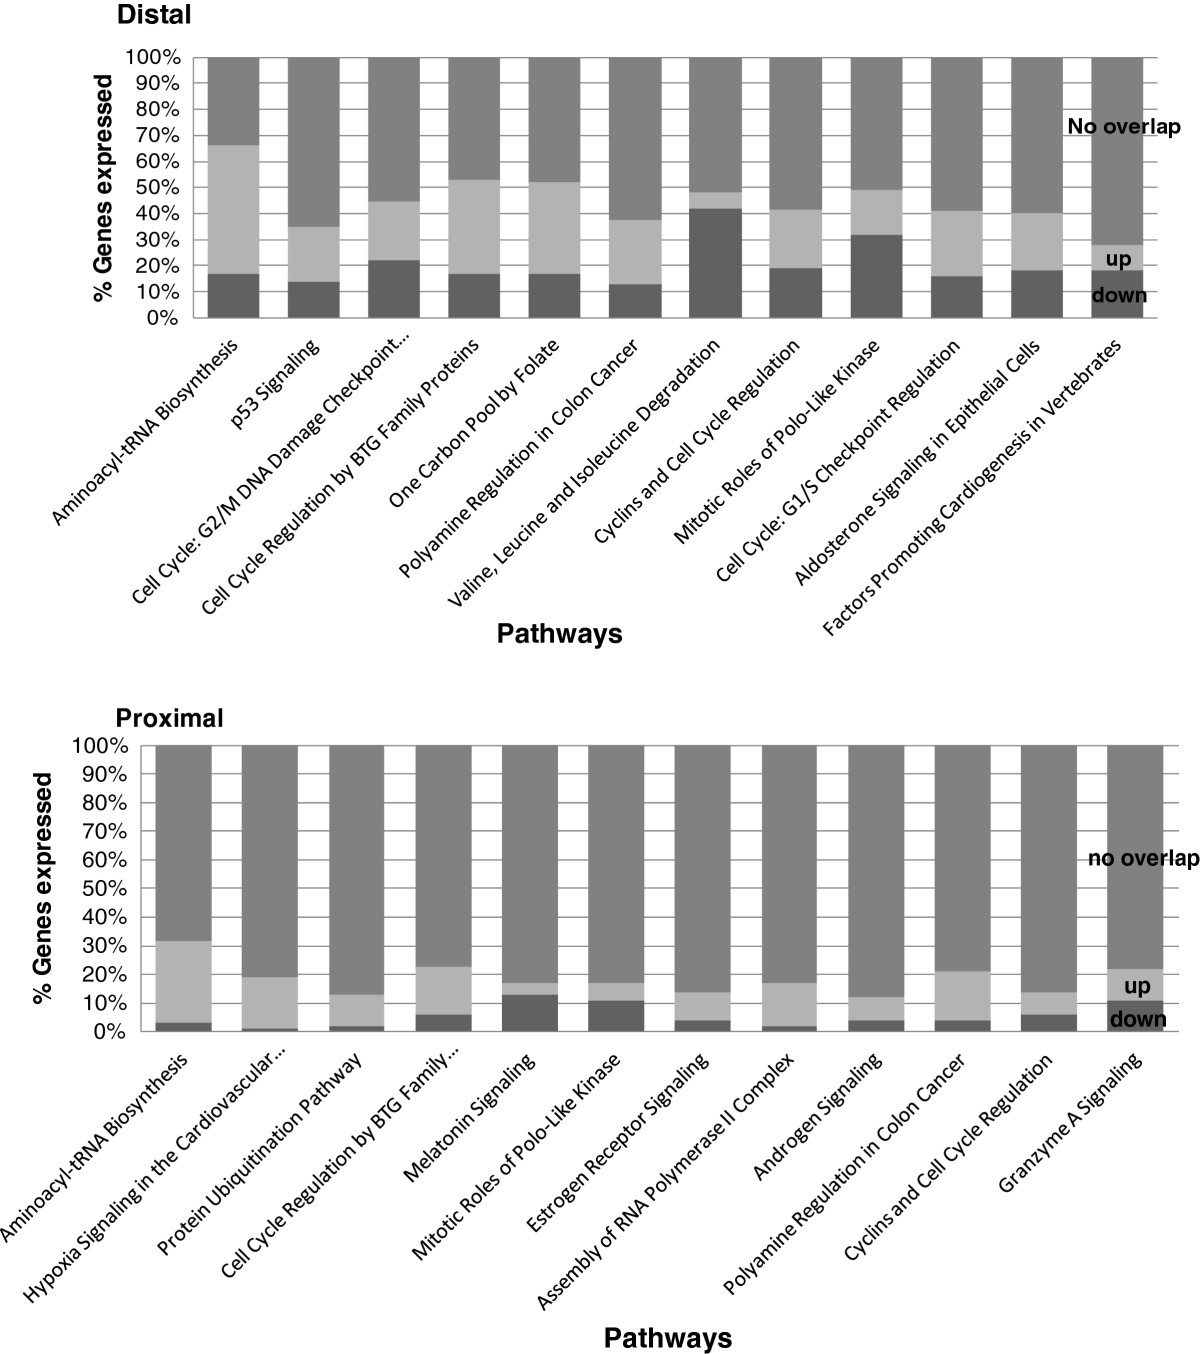 http://static-content.springer.com/image/art%3A10.1186%2F1472-6793-13-2/MediaObjects/12899_2012_Article_202_Fig4_HTML.jpg